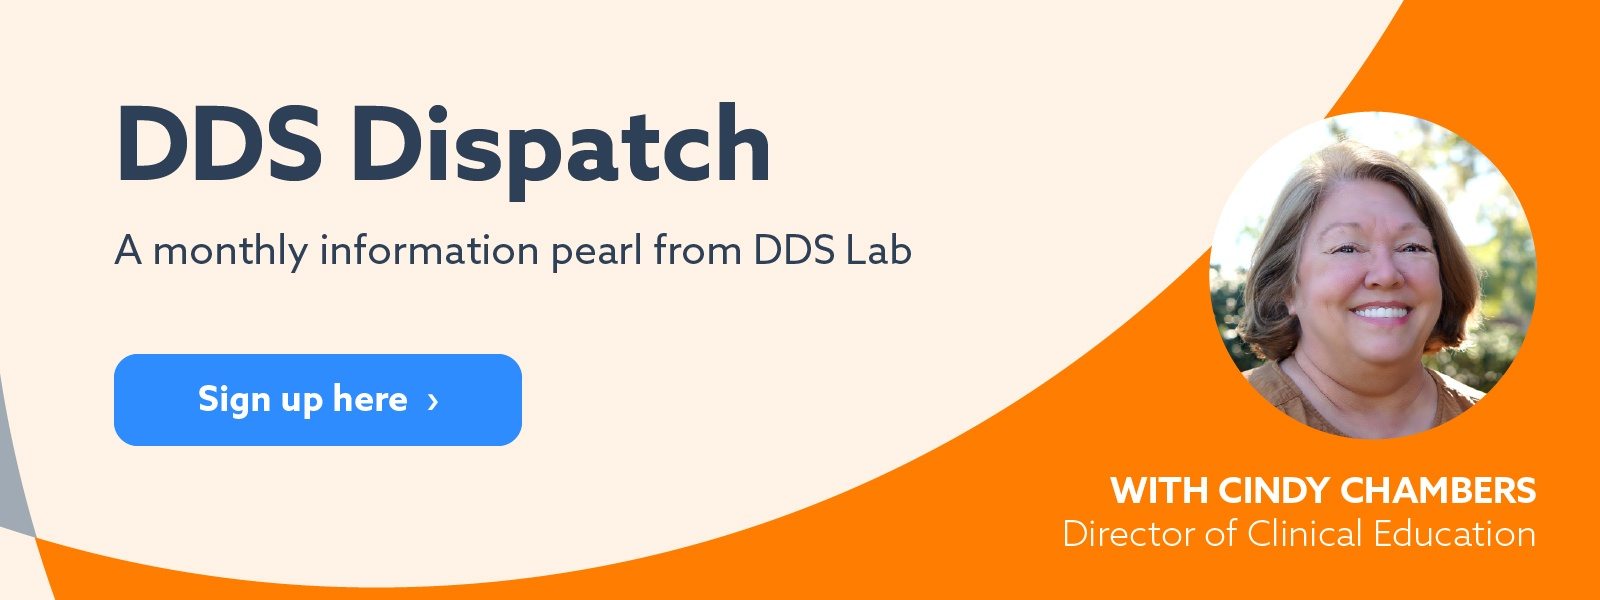 DDS Dispatch Sign Up